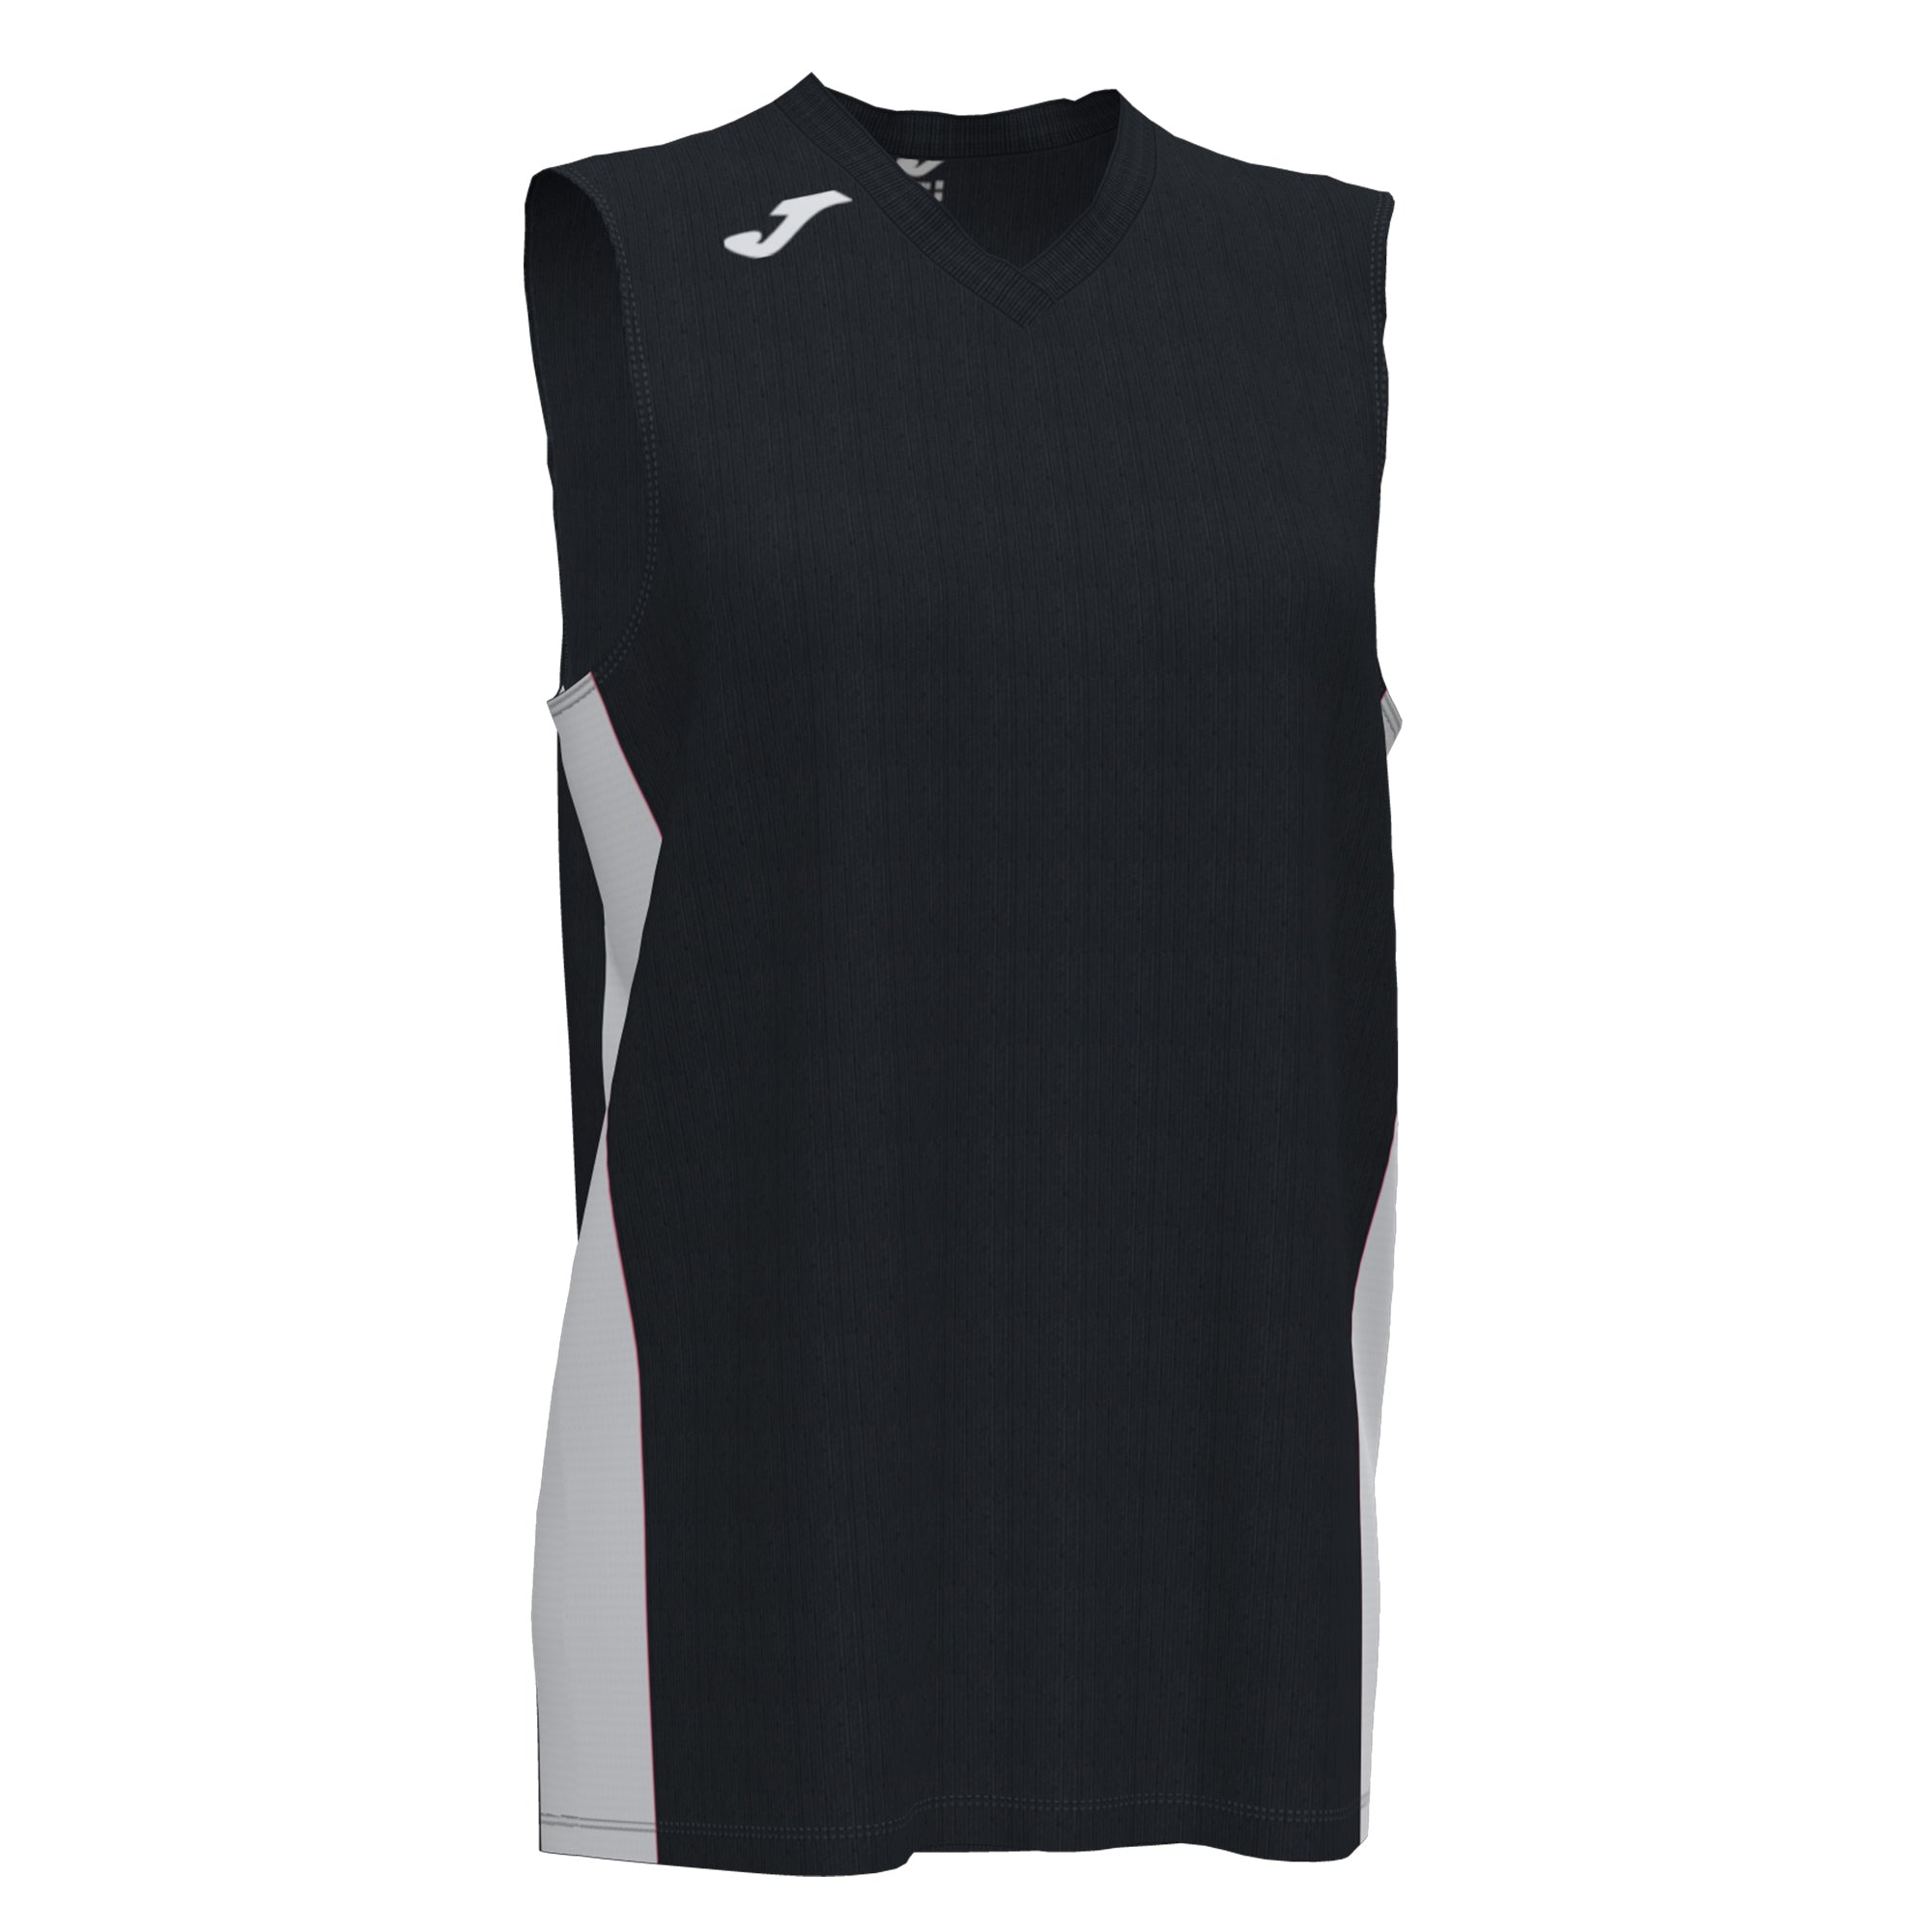 Teamwear - Joma Cancha III Sleeveless - Black/White - JO-101573-102